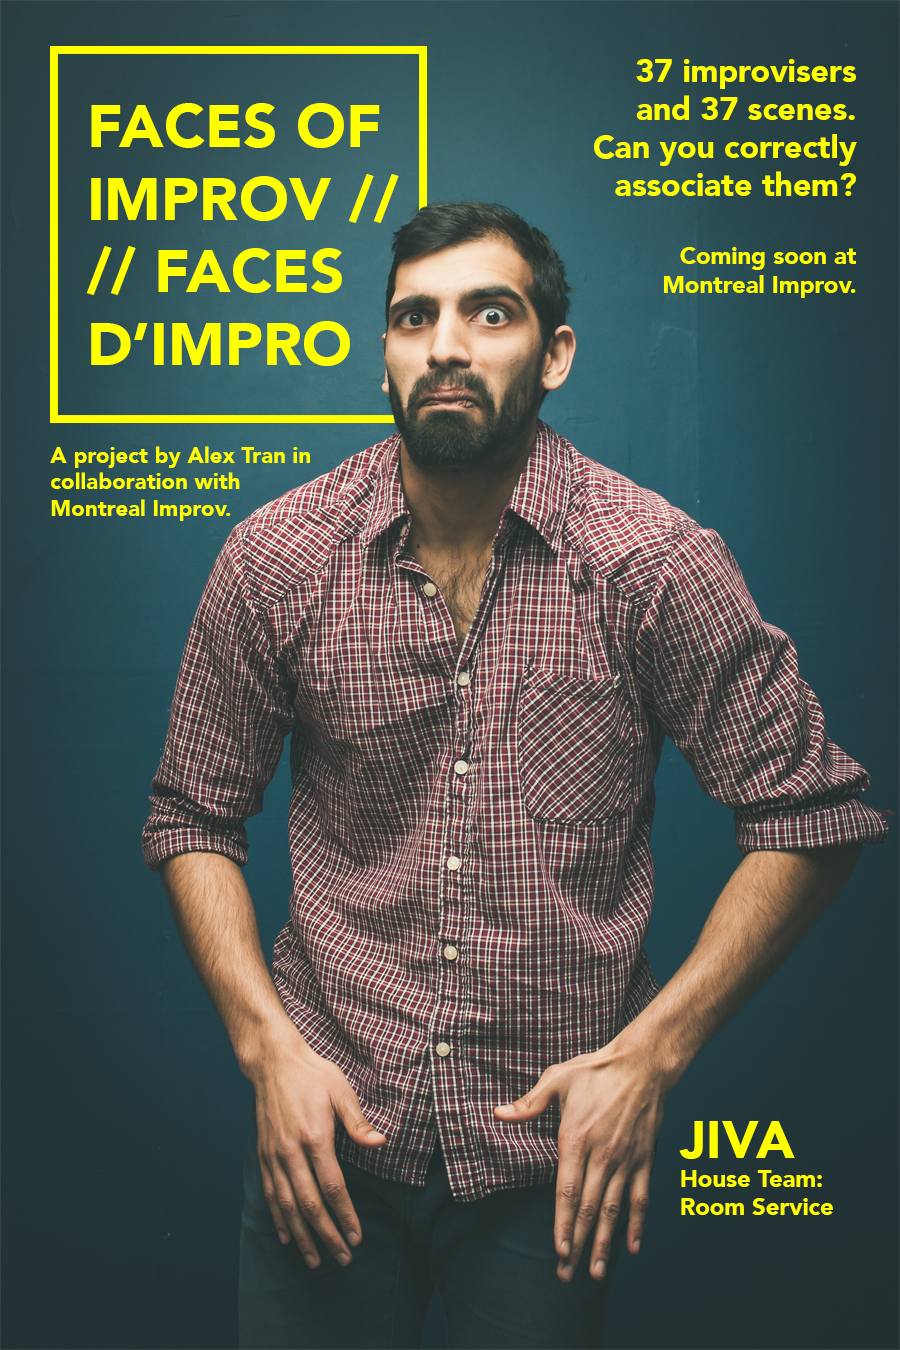 portrait-jiva-kanji-promo-poster-montreal-improv-faces-of-improv-photographer-alex-tran